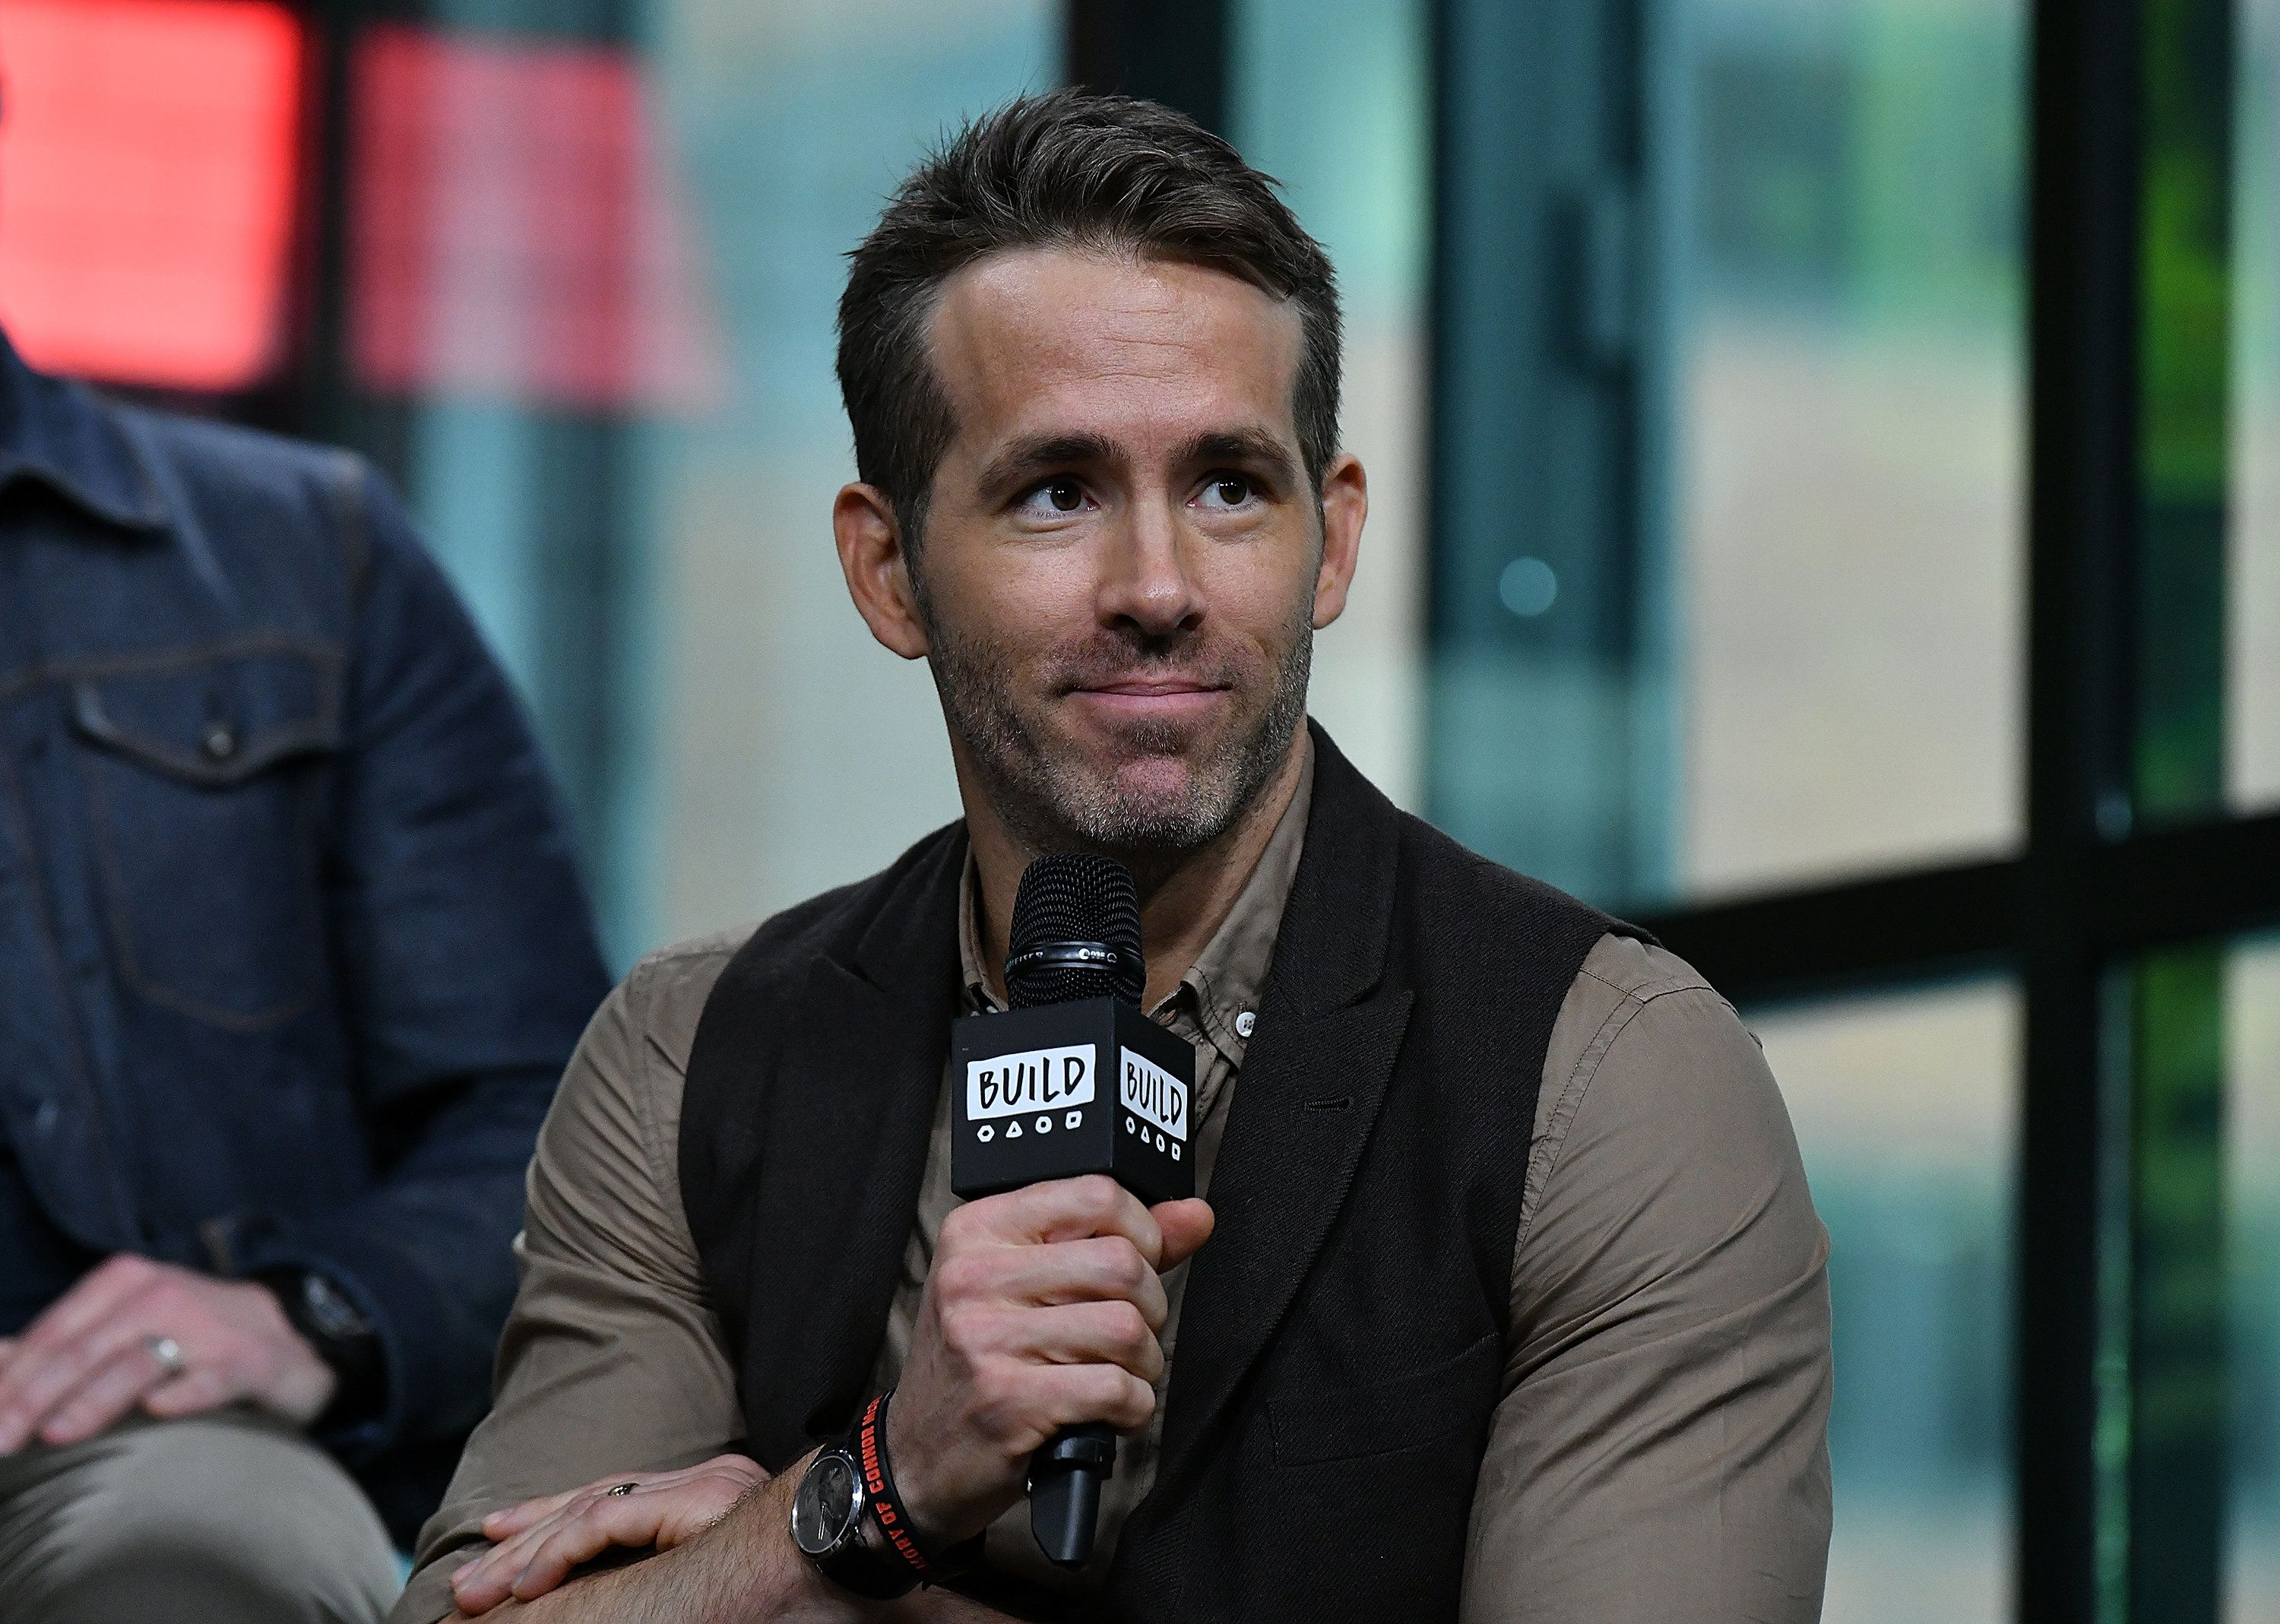 NEW YORK, NY - MAY 14:  (EXCLUSIVE COVERAGE) Actor/producer Ryan Reynolds visits Build Series to discuss 'Deadpool 2' at Build Studio on May 14, 2018 in New York City.  (Photo by Slaven Vlasic/Getty Images)